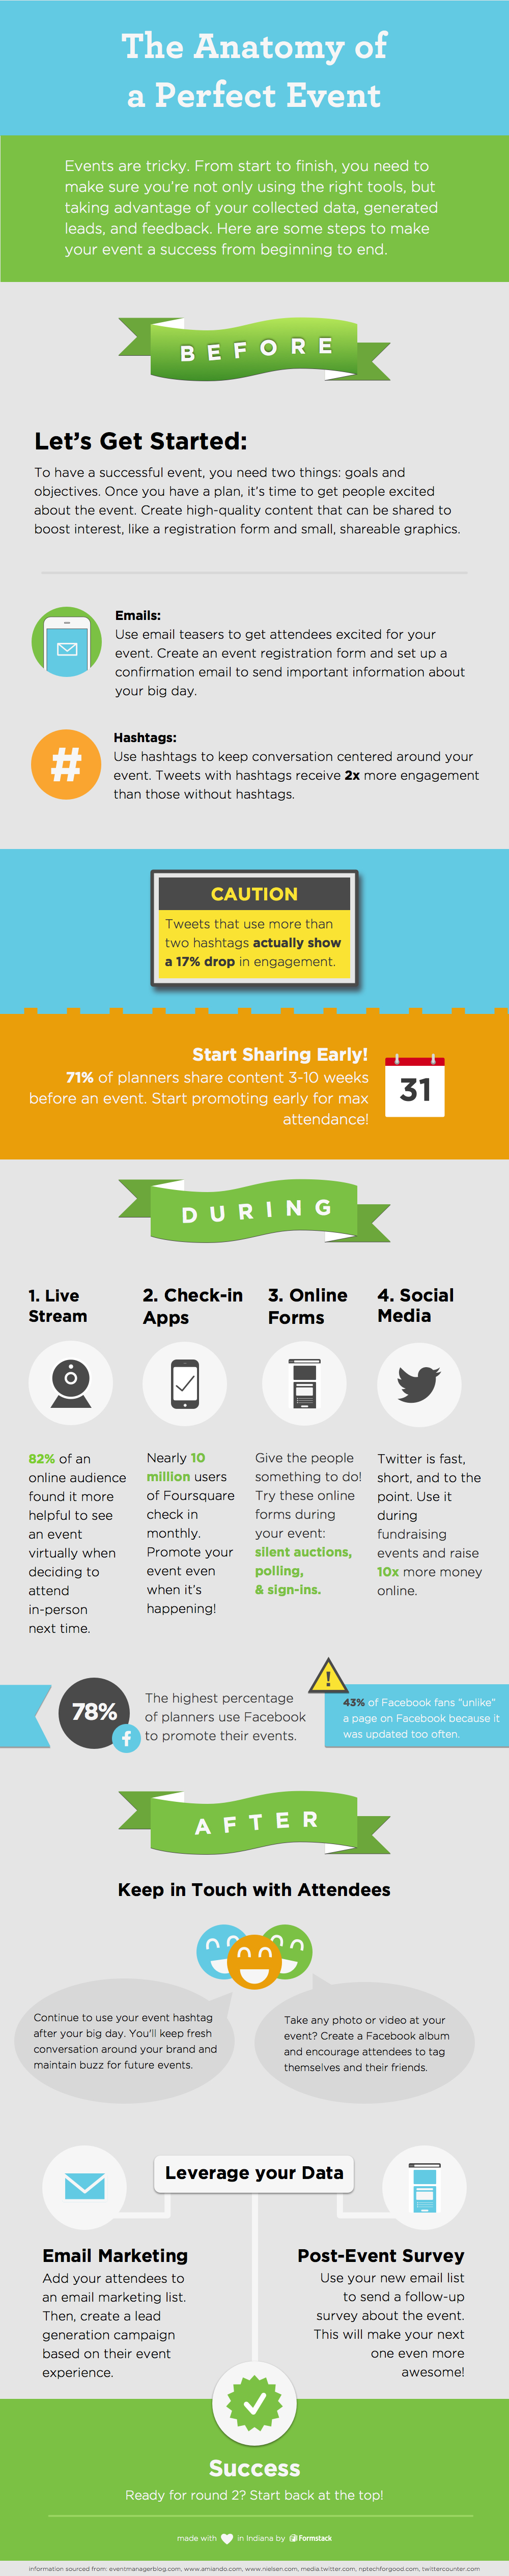 Formstack Event Infographic 4.21.14